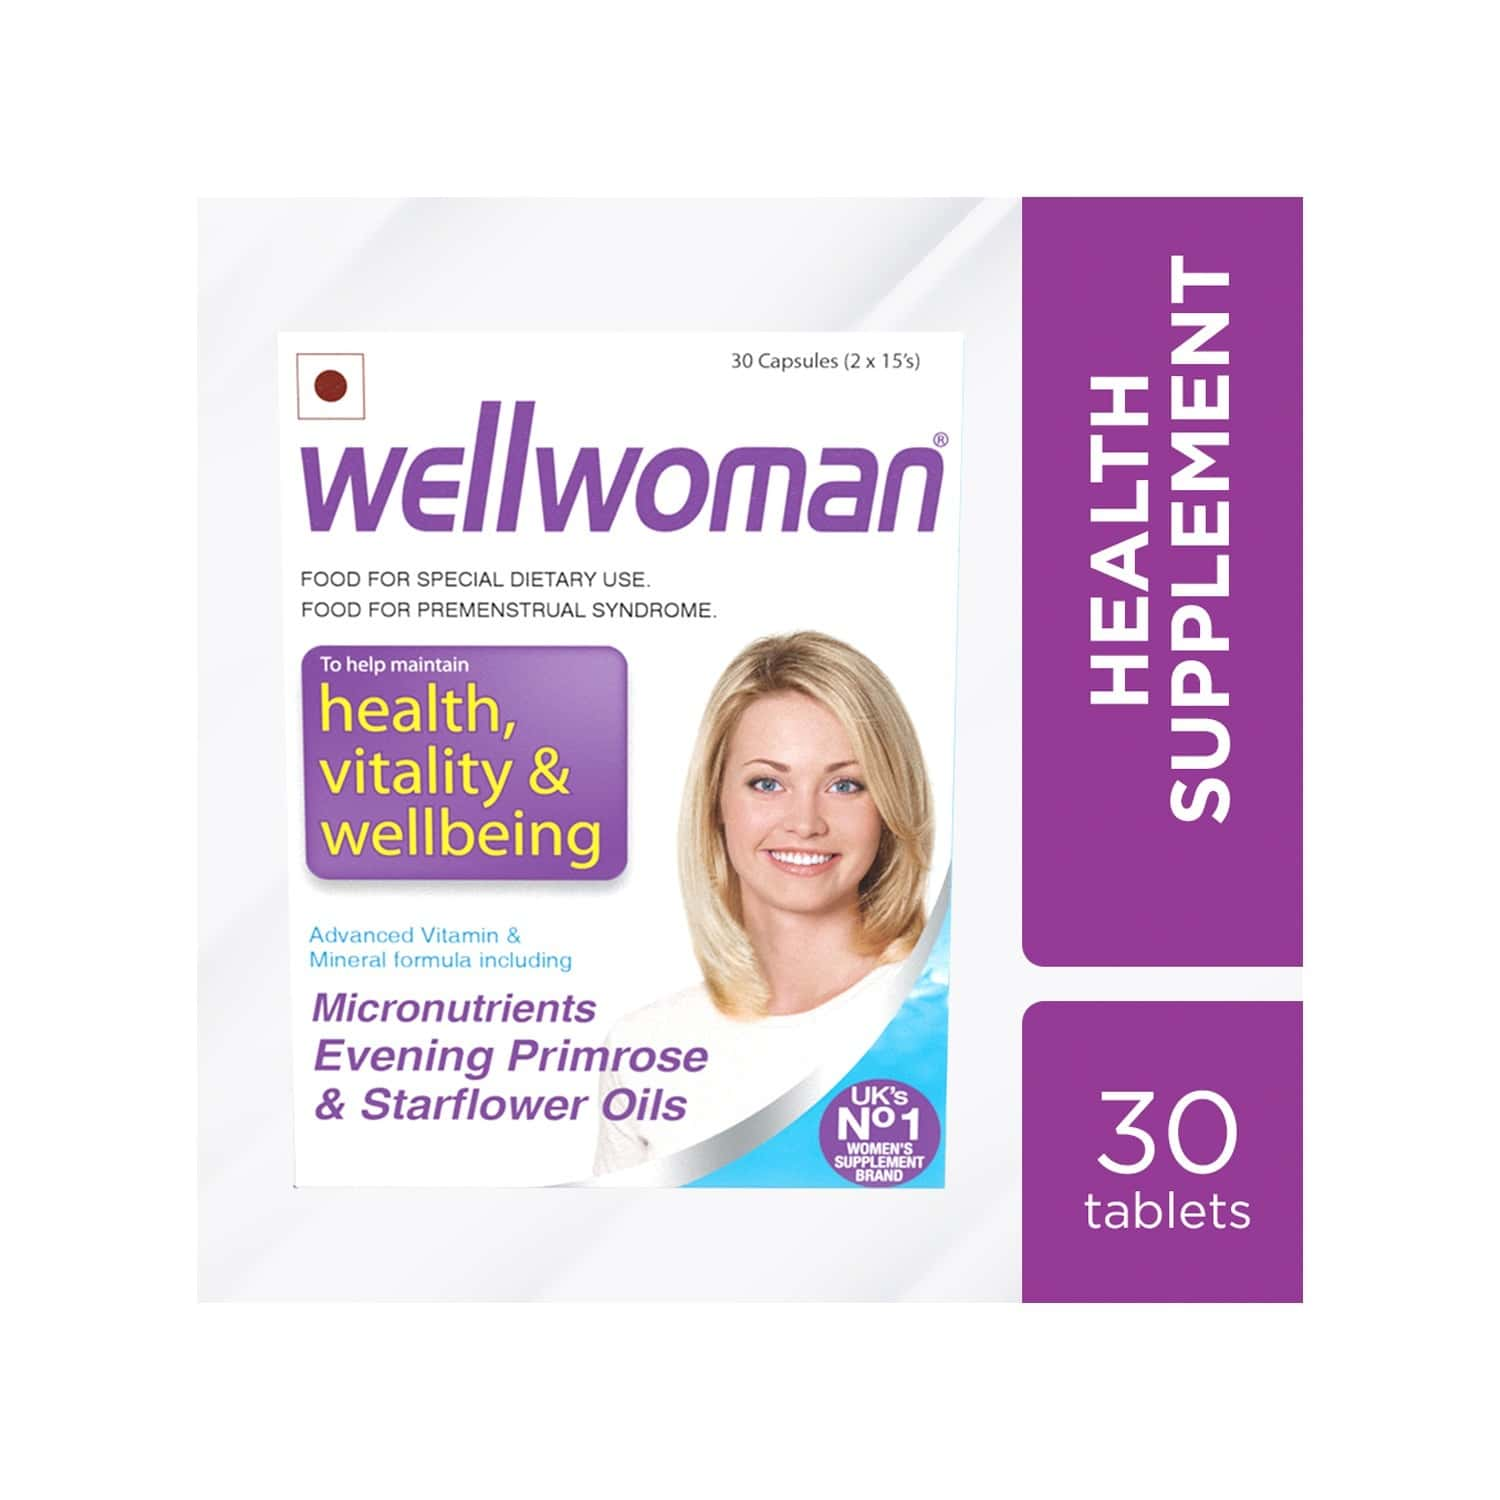 Wellwoman - Health Supplements - Micronutrients, Evening Primrose Oil And Starflower Oil - 30 Capsules